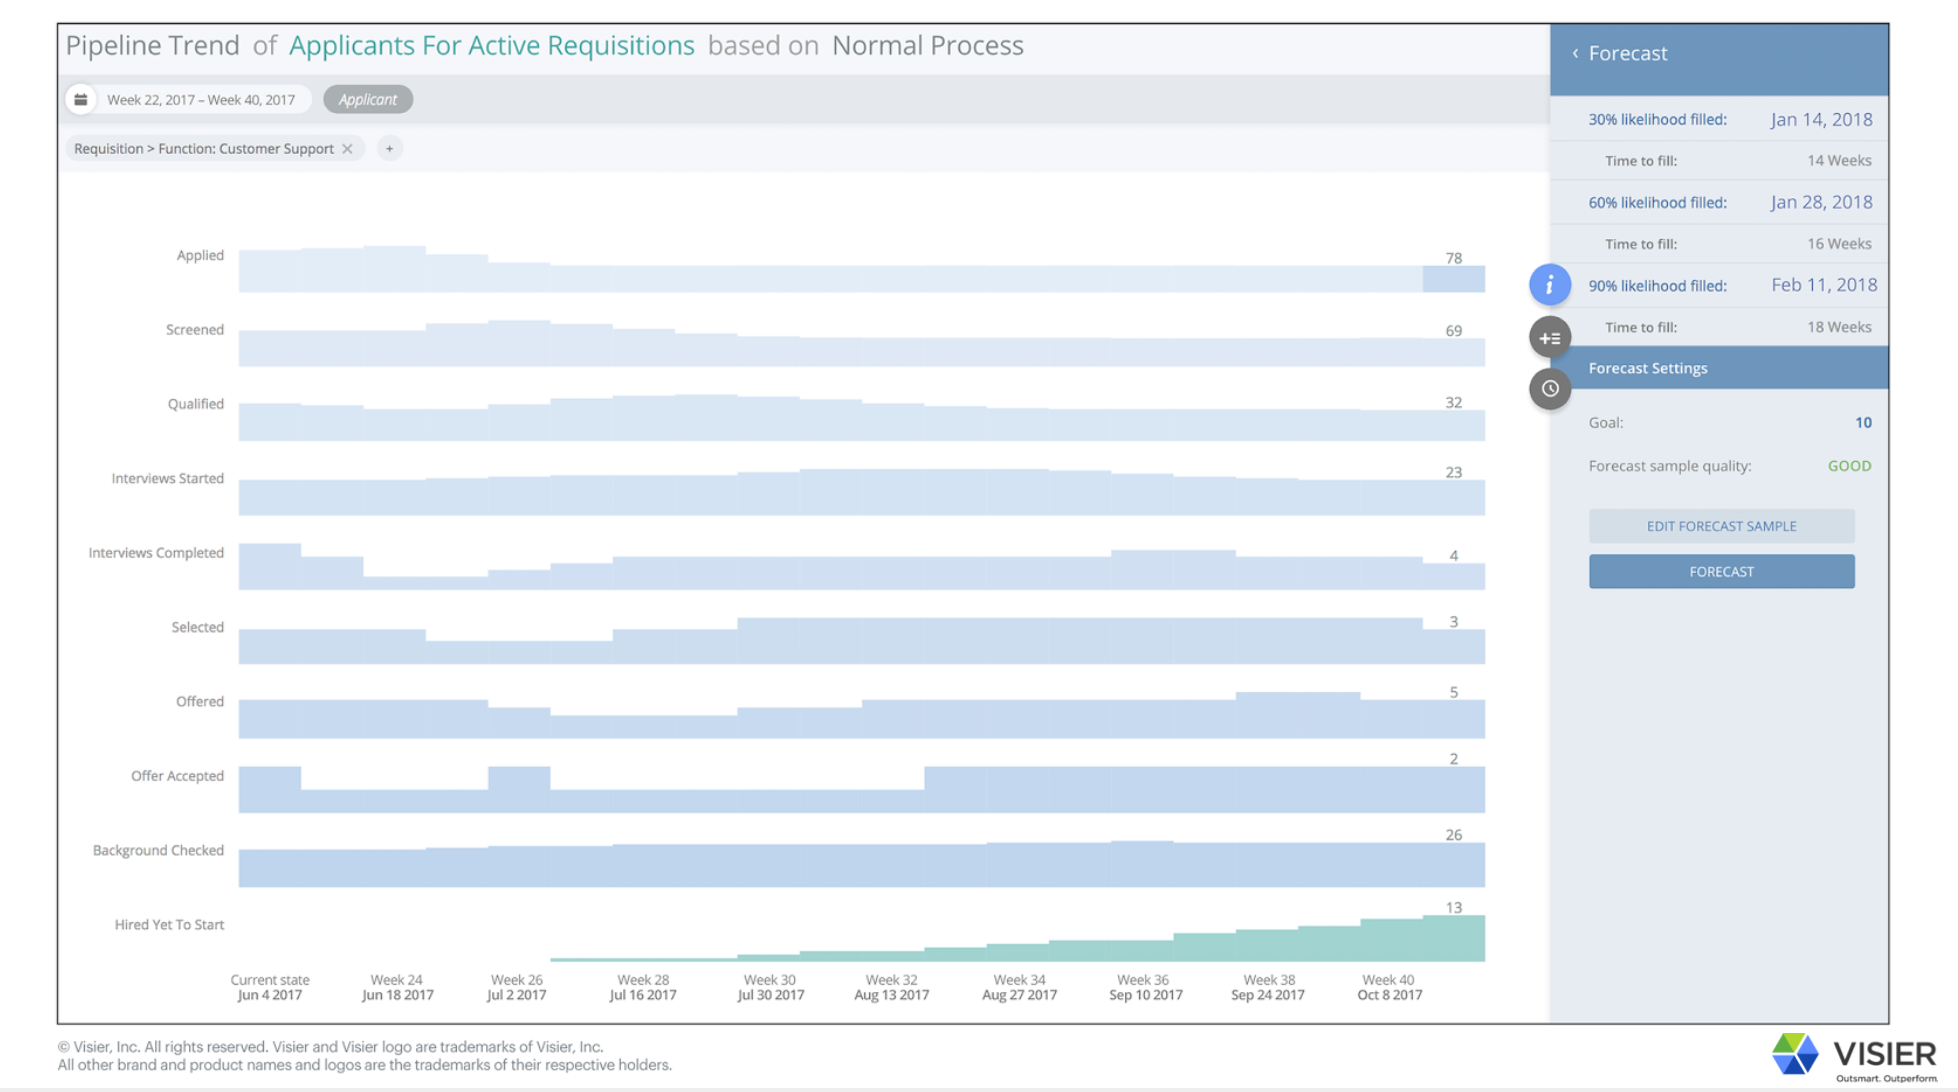 Visier Talent Acquisition data visualization of pipeline trend of applicants for active requisitions